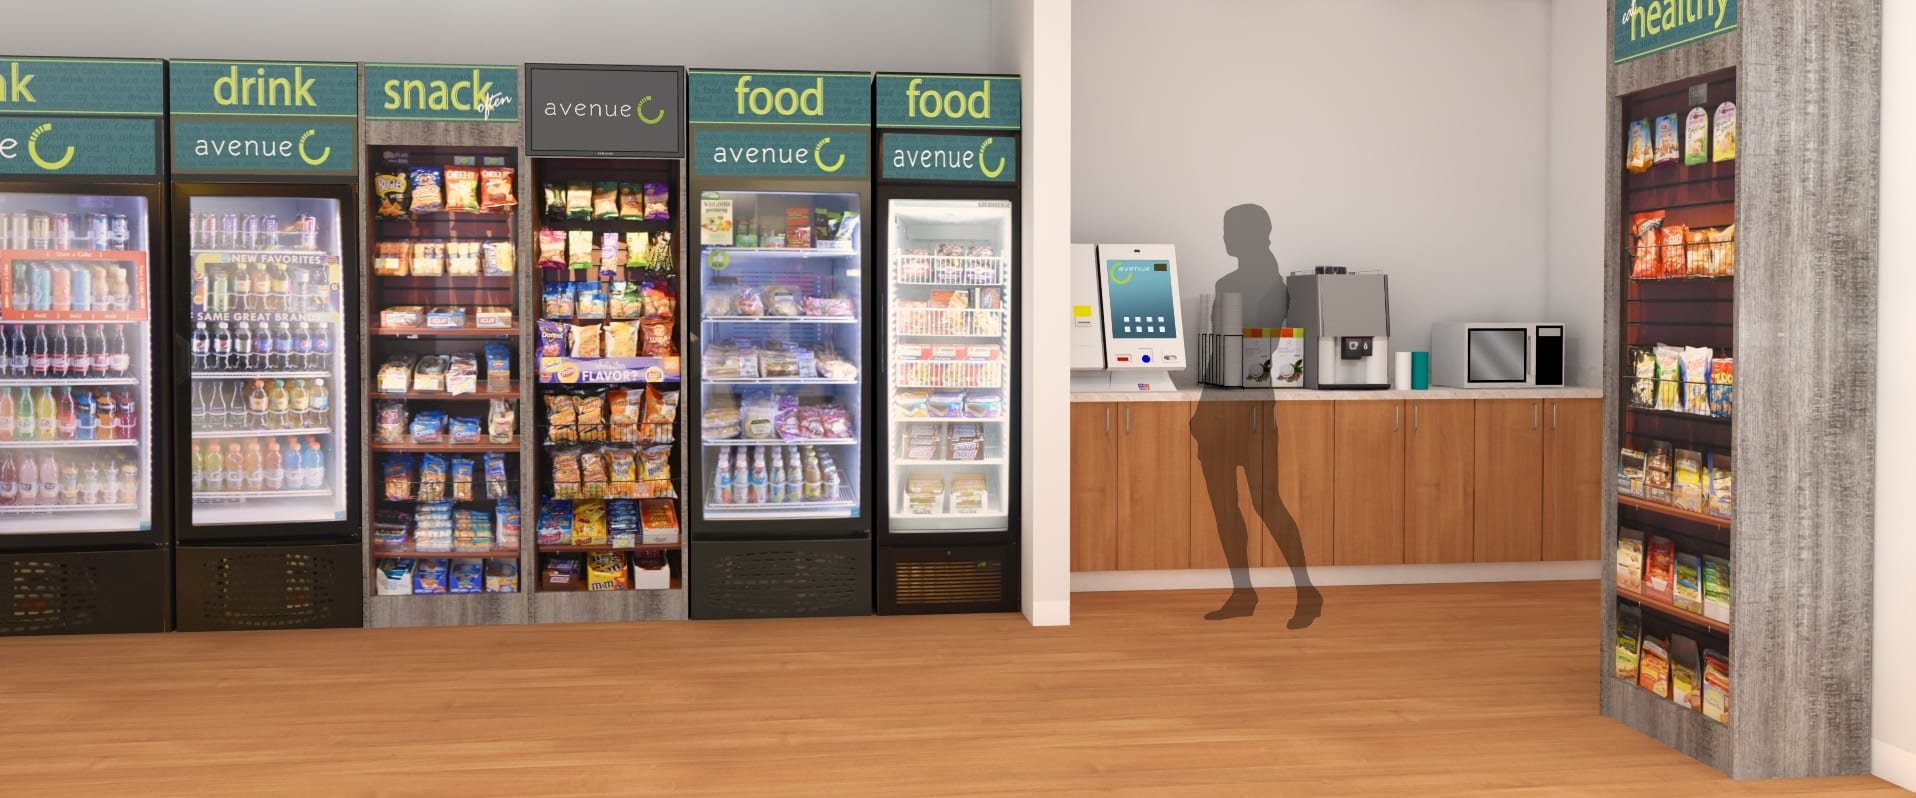 MicroMarket that includes two fully stocked beverage coolers and three vertical chip racks with self service touch screen checkout device